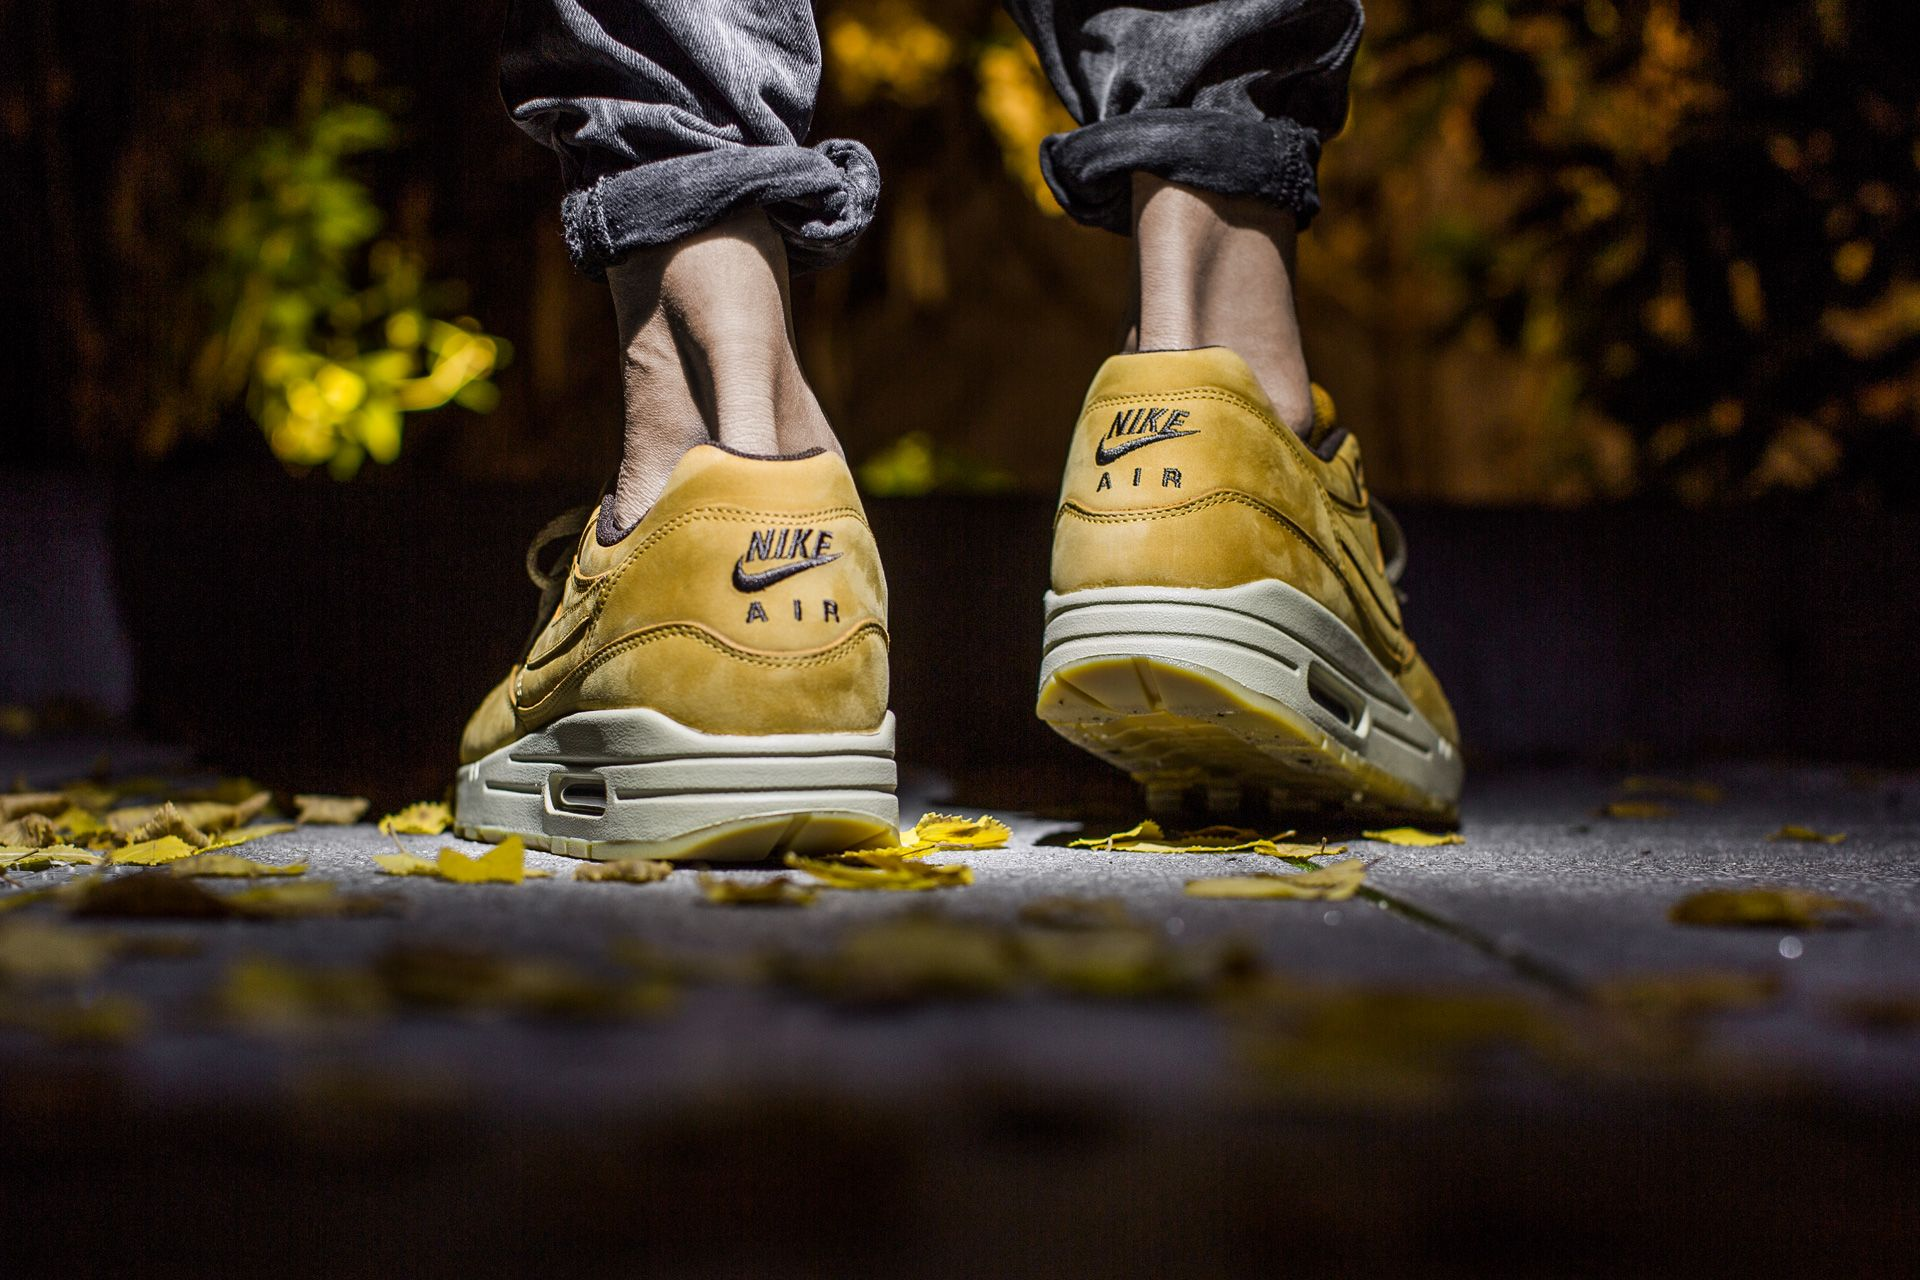 new product 3c585 aa5e7 NIKE AIR MAX 1 LTR PREMIUM WHEAT PACK BRONZEBRONZE-BAROQUE BROWN  available at www.tint-footwear.comnike-air-max-1-ltr-premium-700 Nike air  max 1 LTR ...